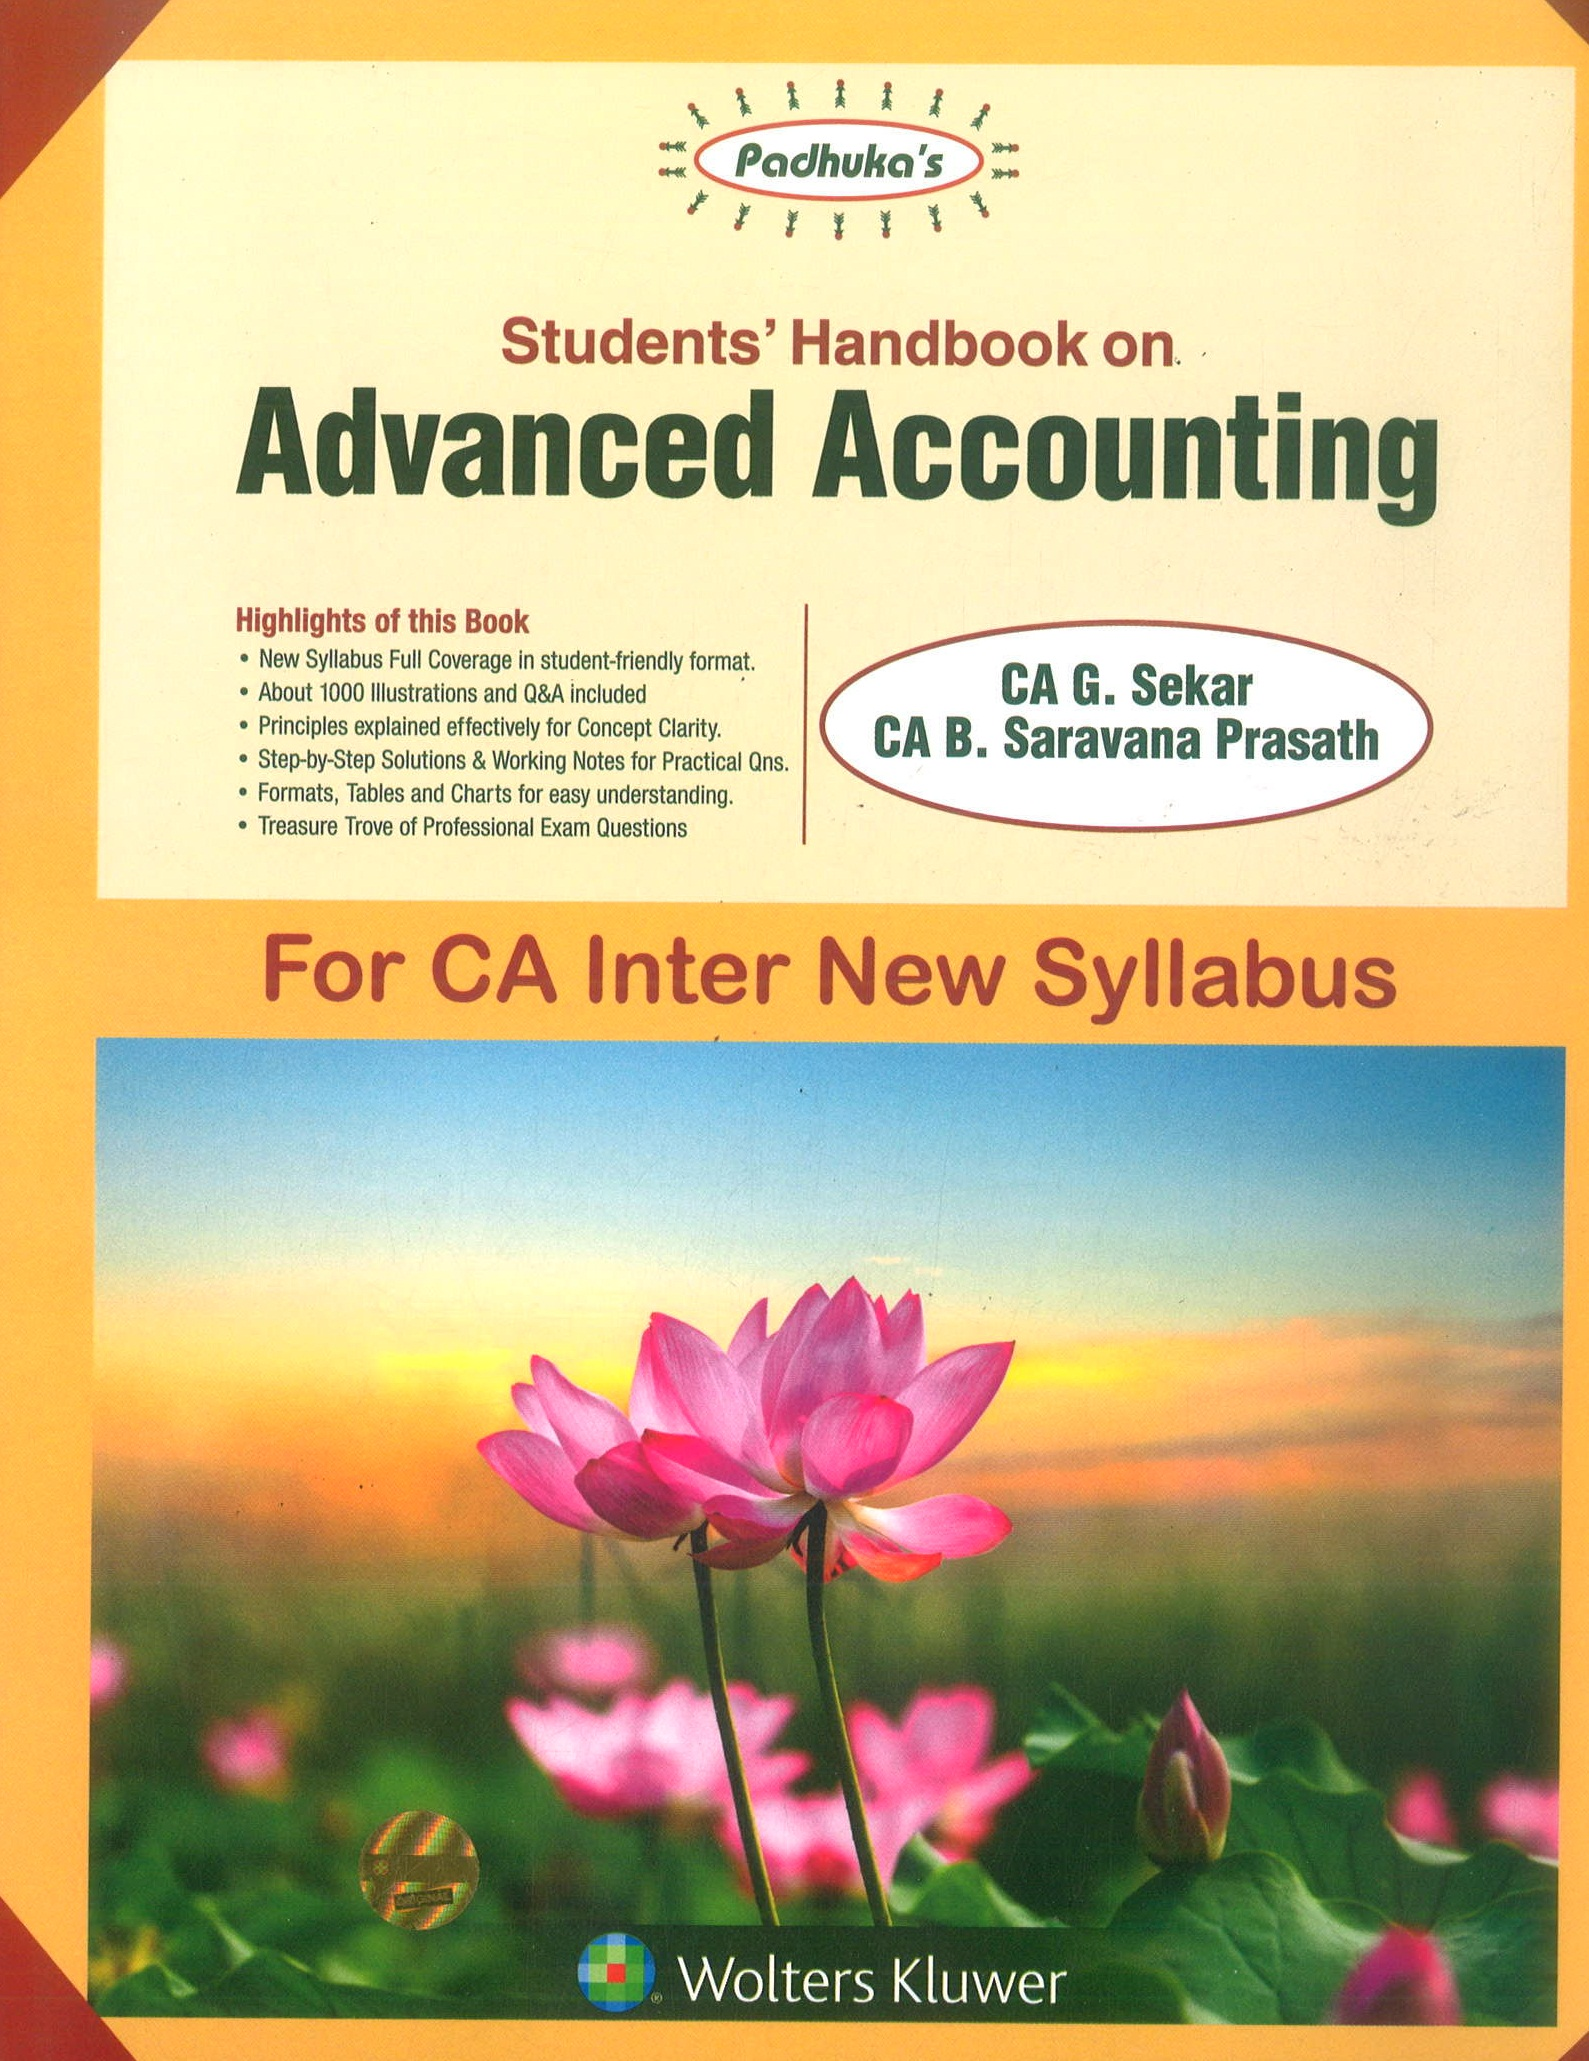 Students' Handbook on Advanced Accounting By Ca B Saravana Prasath Ca G Sekar New Syllabus Applicable for May 2019 Exam